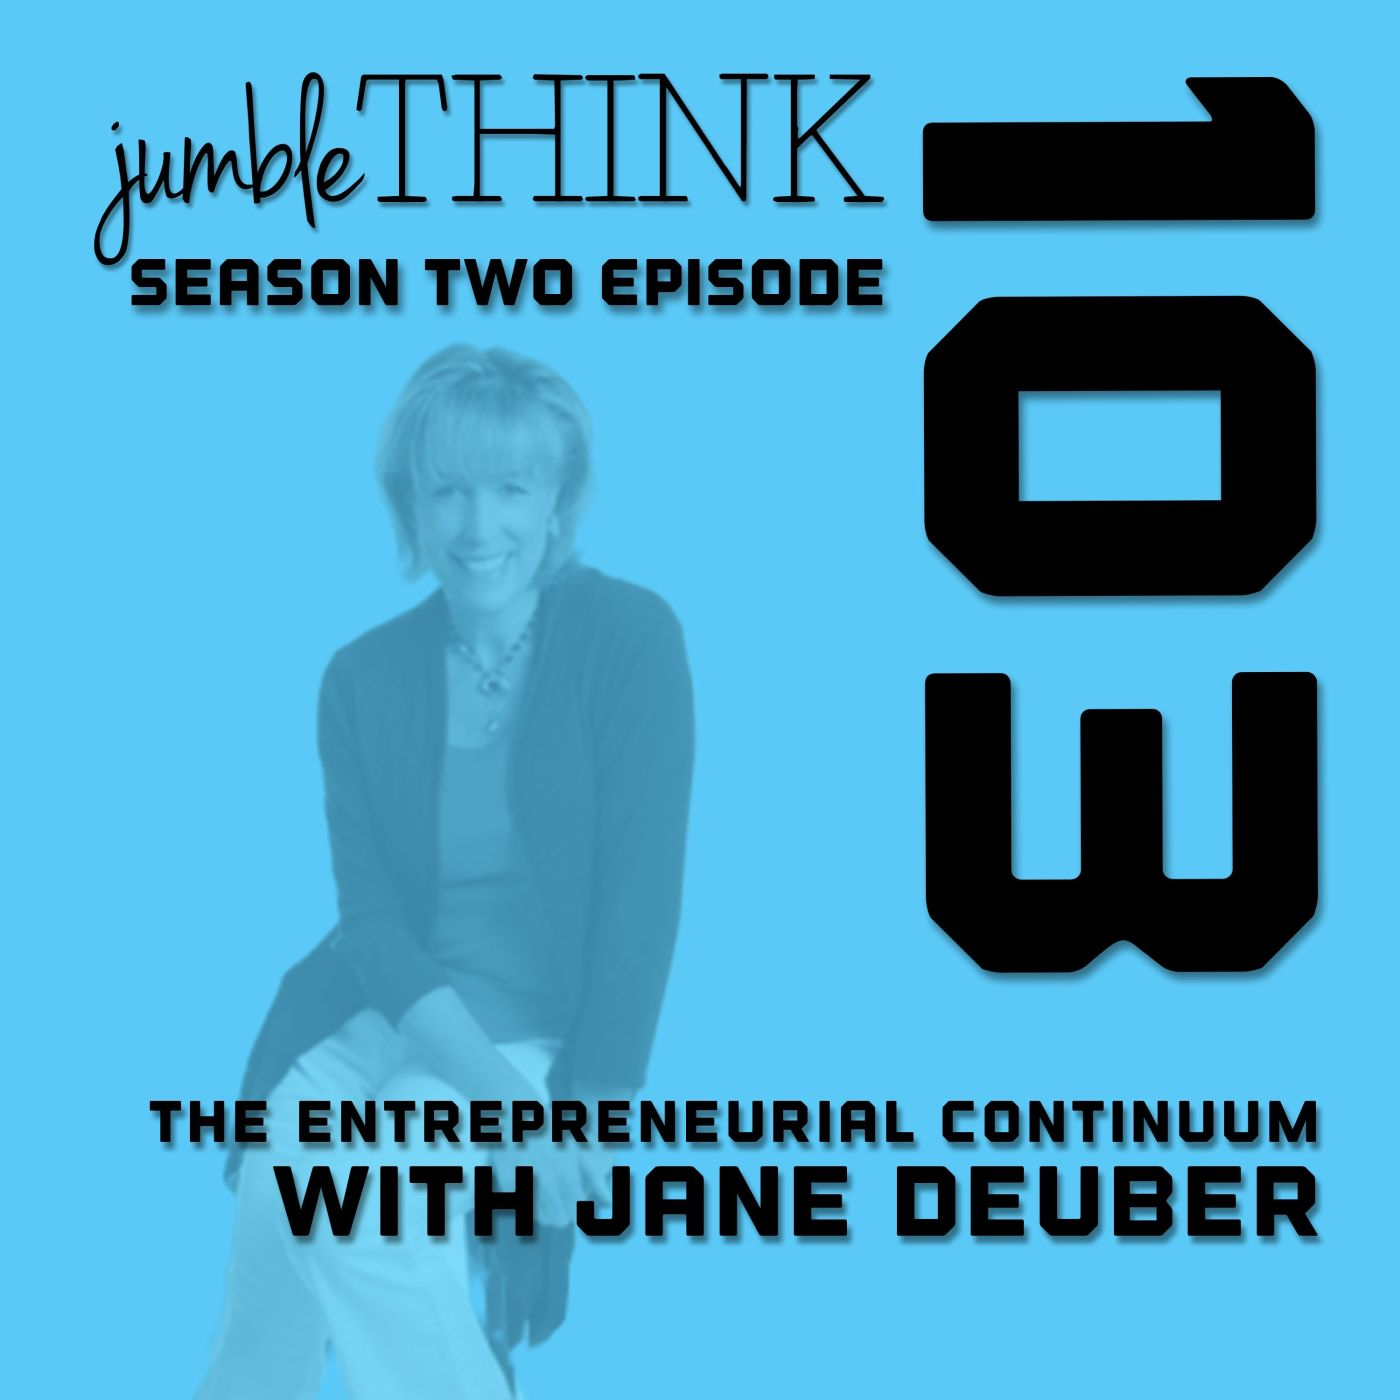 The Entrepreneurial Continuum with Jane Deuber